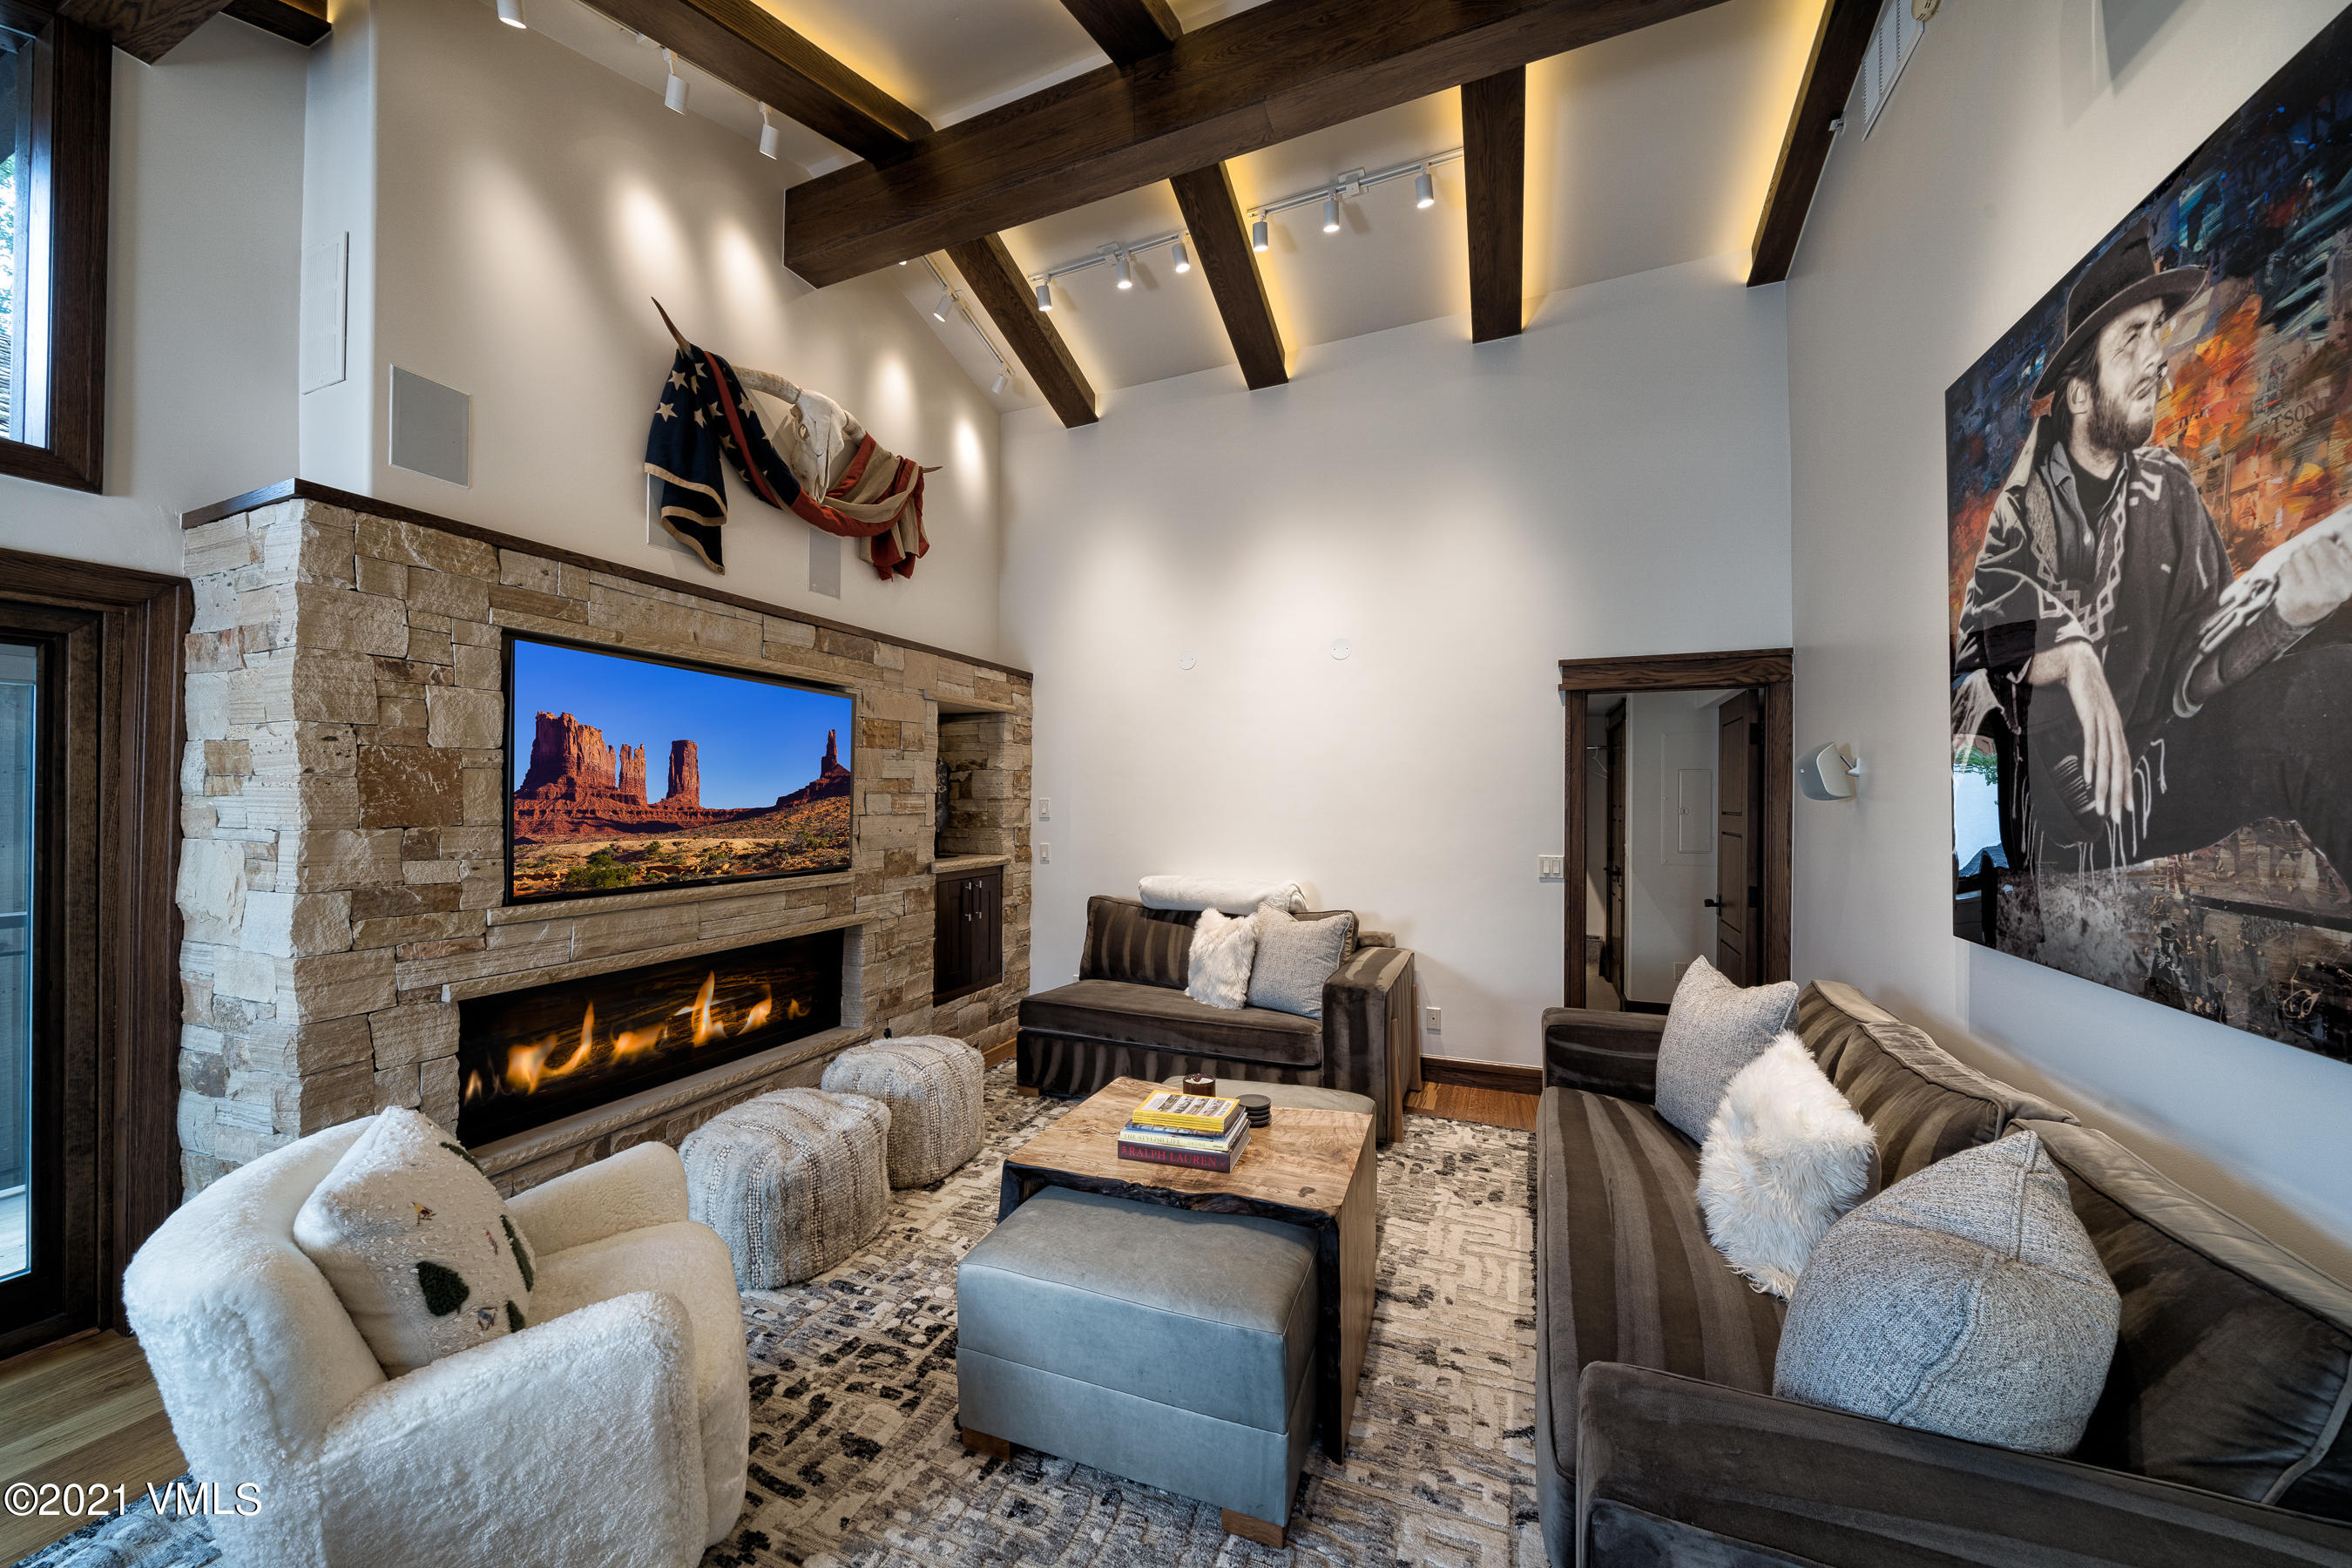 Recently remodeled and designer furnished condo is an iconic Wolf on Wall Street location in Vail Village!  This top floor, vaulted ceiling Penthouse has three bedrooms, two living rooms and two amazing decks overlooking Vail Village and Gondola One. Enjoy the vibrancy of the Village from the decks or escape to views, peace and quiet inside this Air Conditioned Penthouse. Motorized blinds, heated bathroom floors,Great Boardwalk location in the heart of the Village core! Invited Home forecasted short term rentals at $201,513.00 see in attachments.